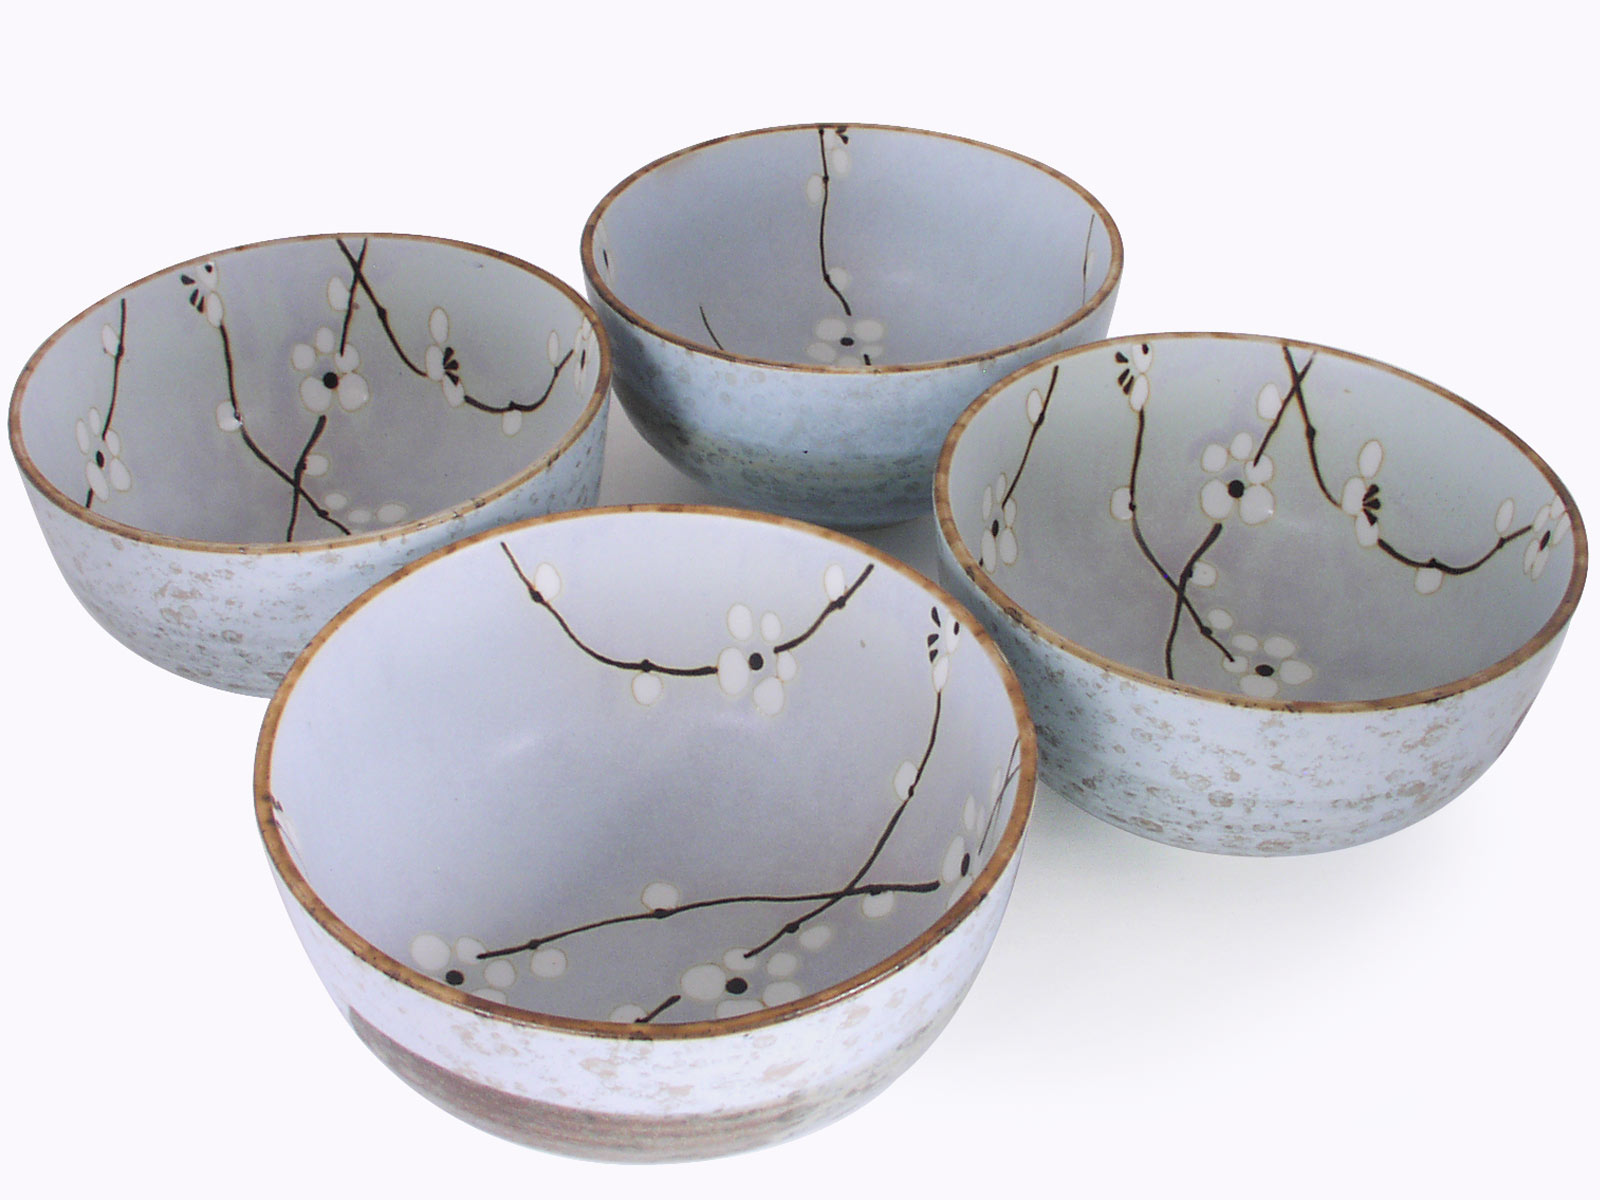 & 5-1/2 Inch Japanese Cherry Blossom Bowl Set of Four